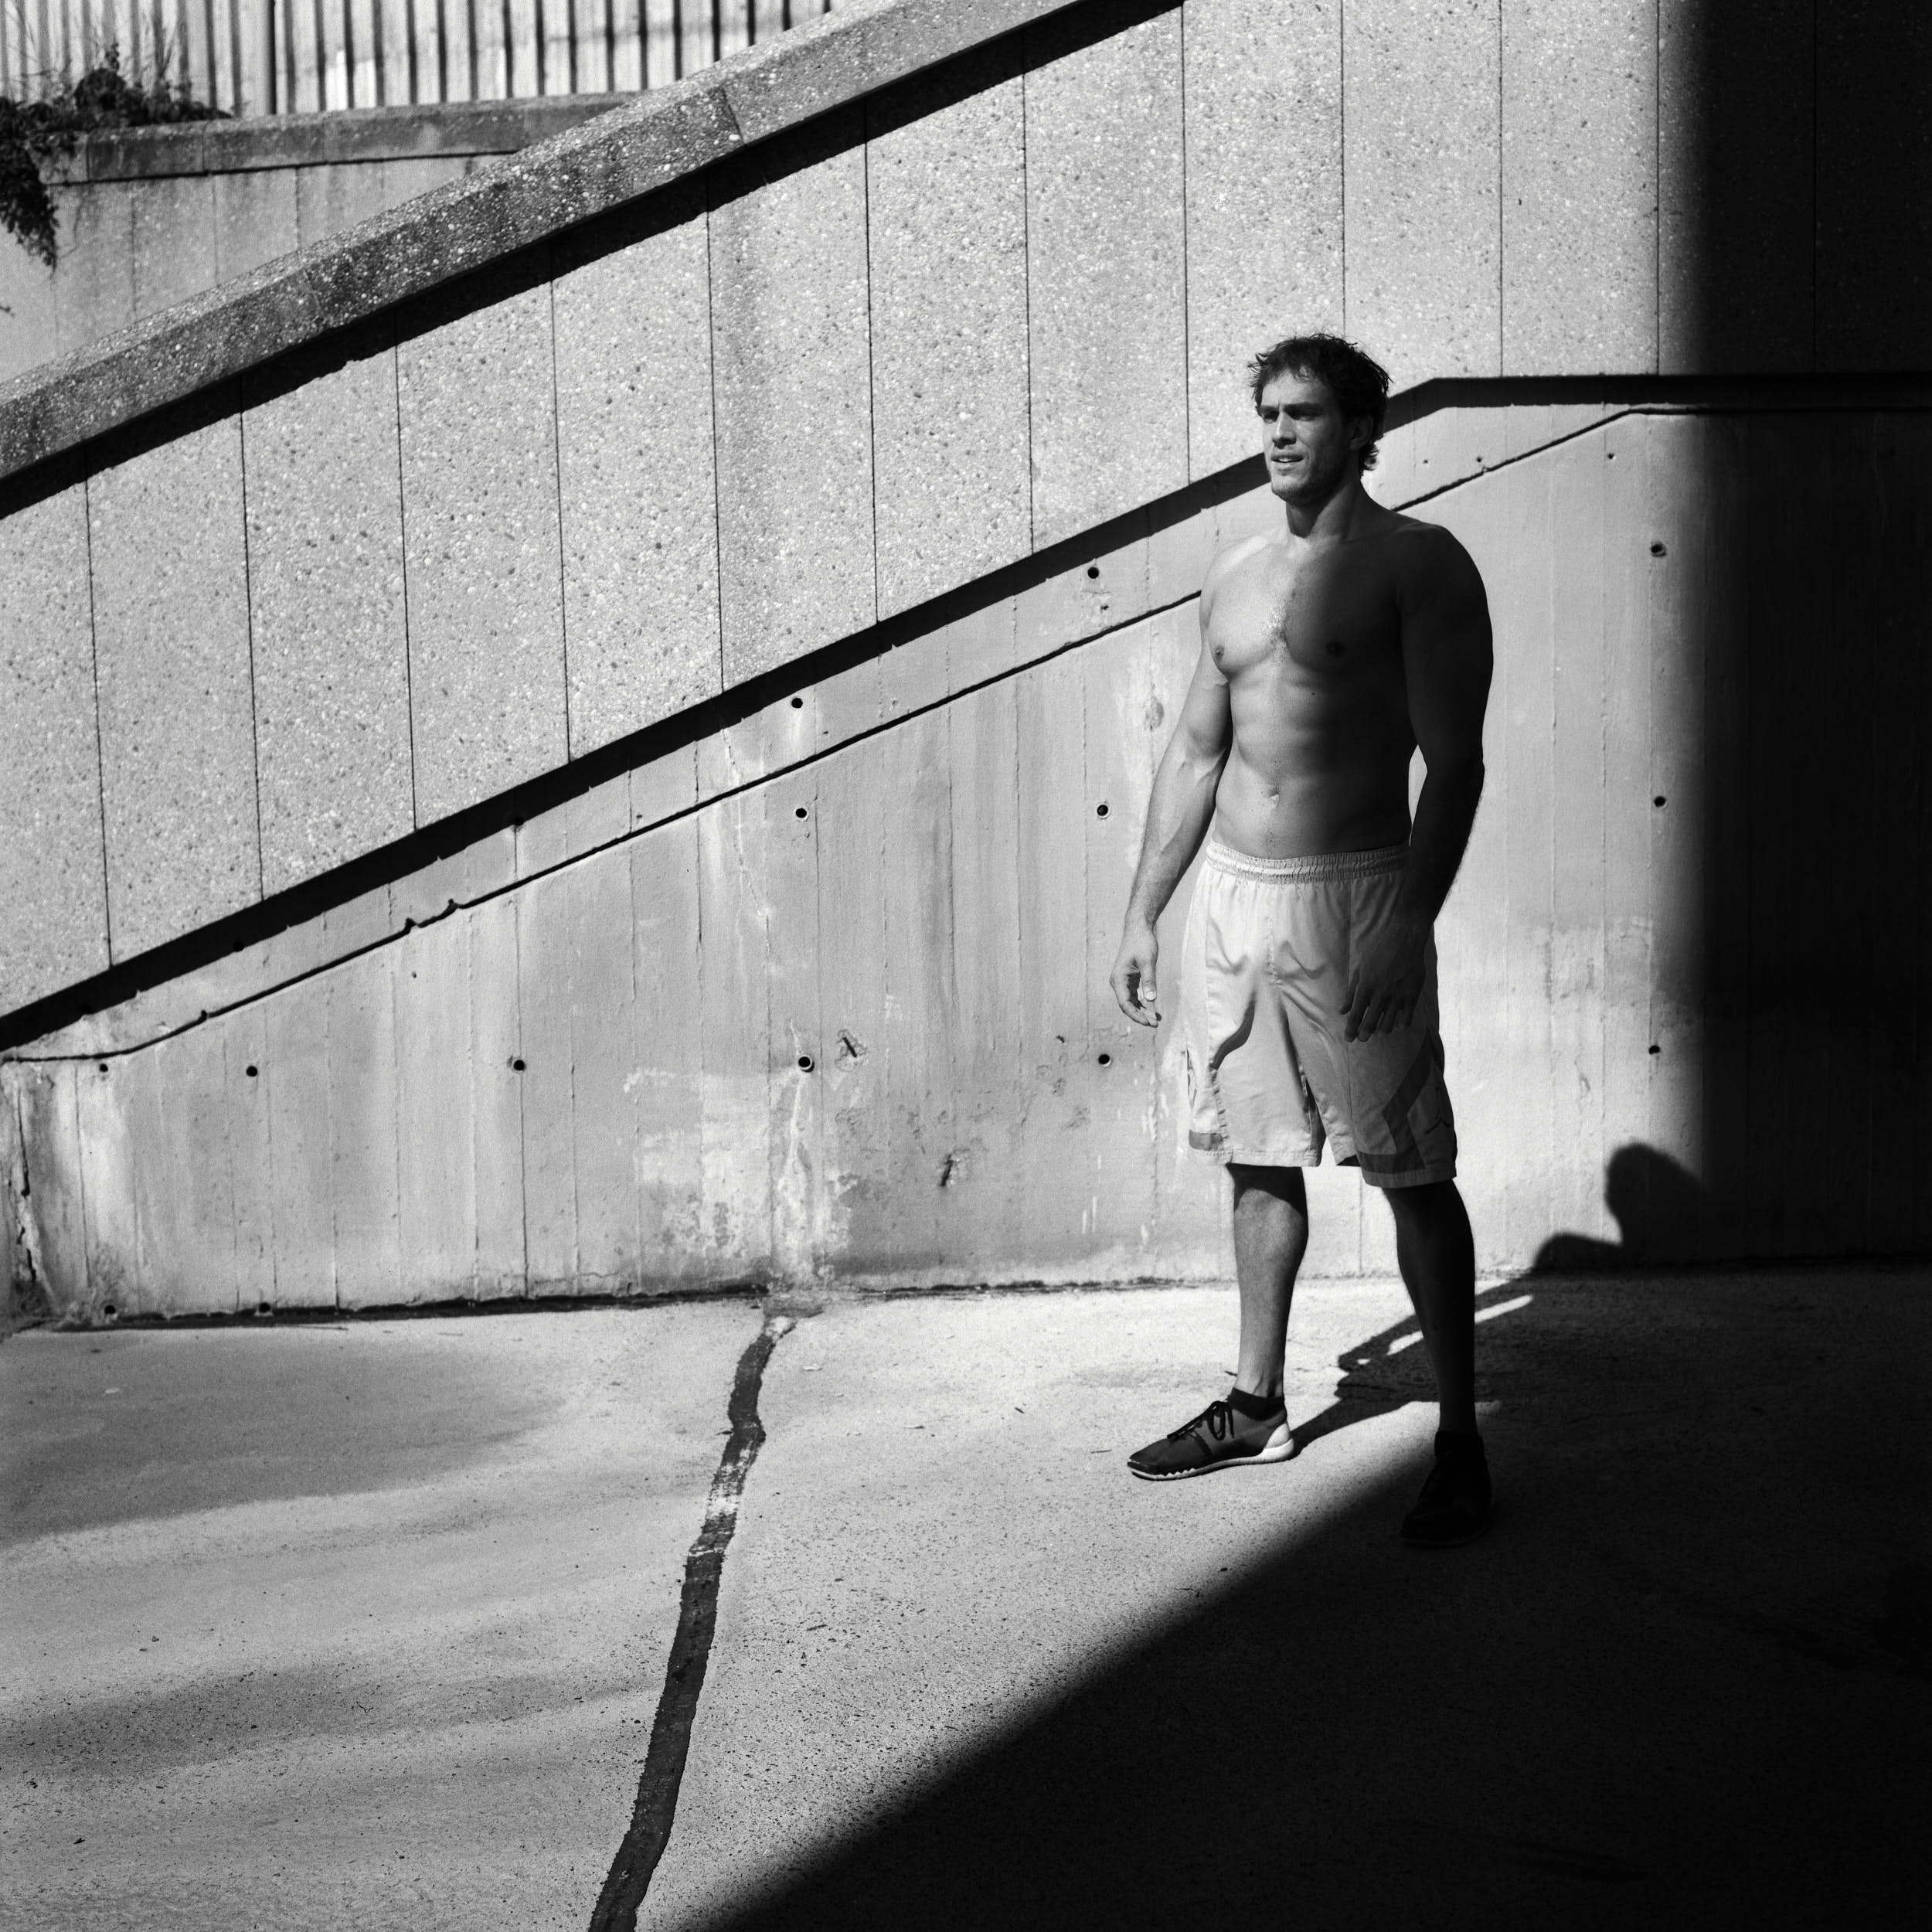 Active lifestyle photography: muscular athlete standing in the shadow.